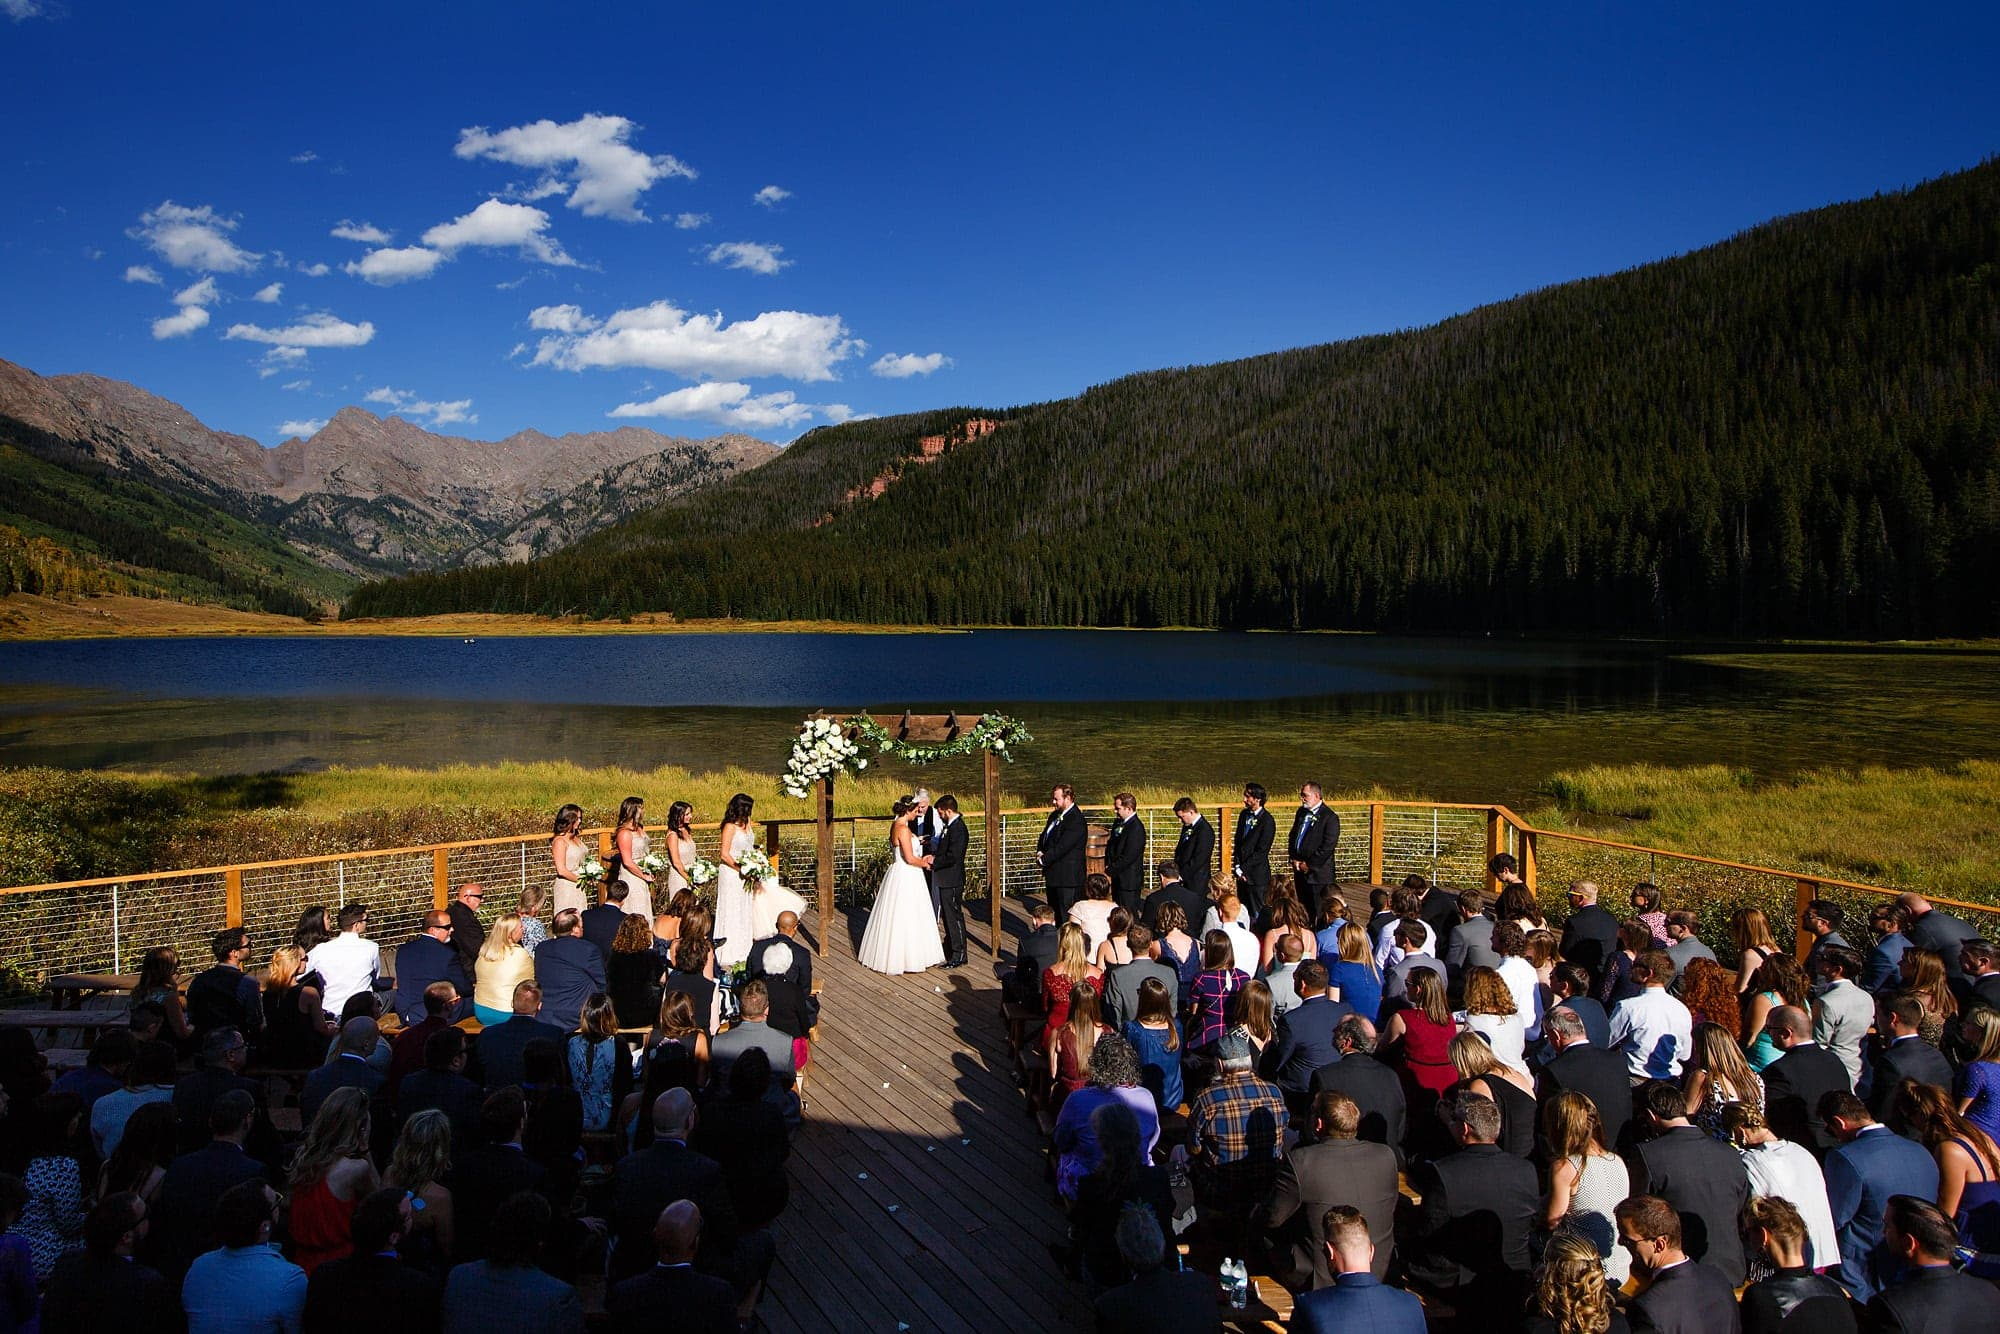 The wedding ceremony takes place on the deck at Piney River Ranch in September 2016 outside of Vail, Colorado with the Gore mountain range in the background.